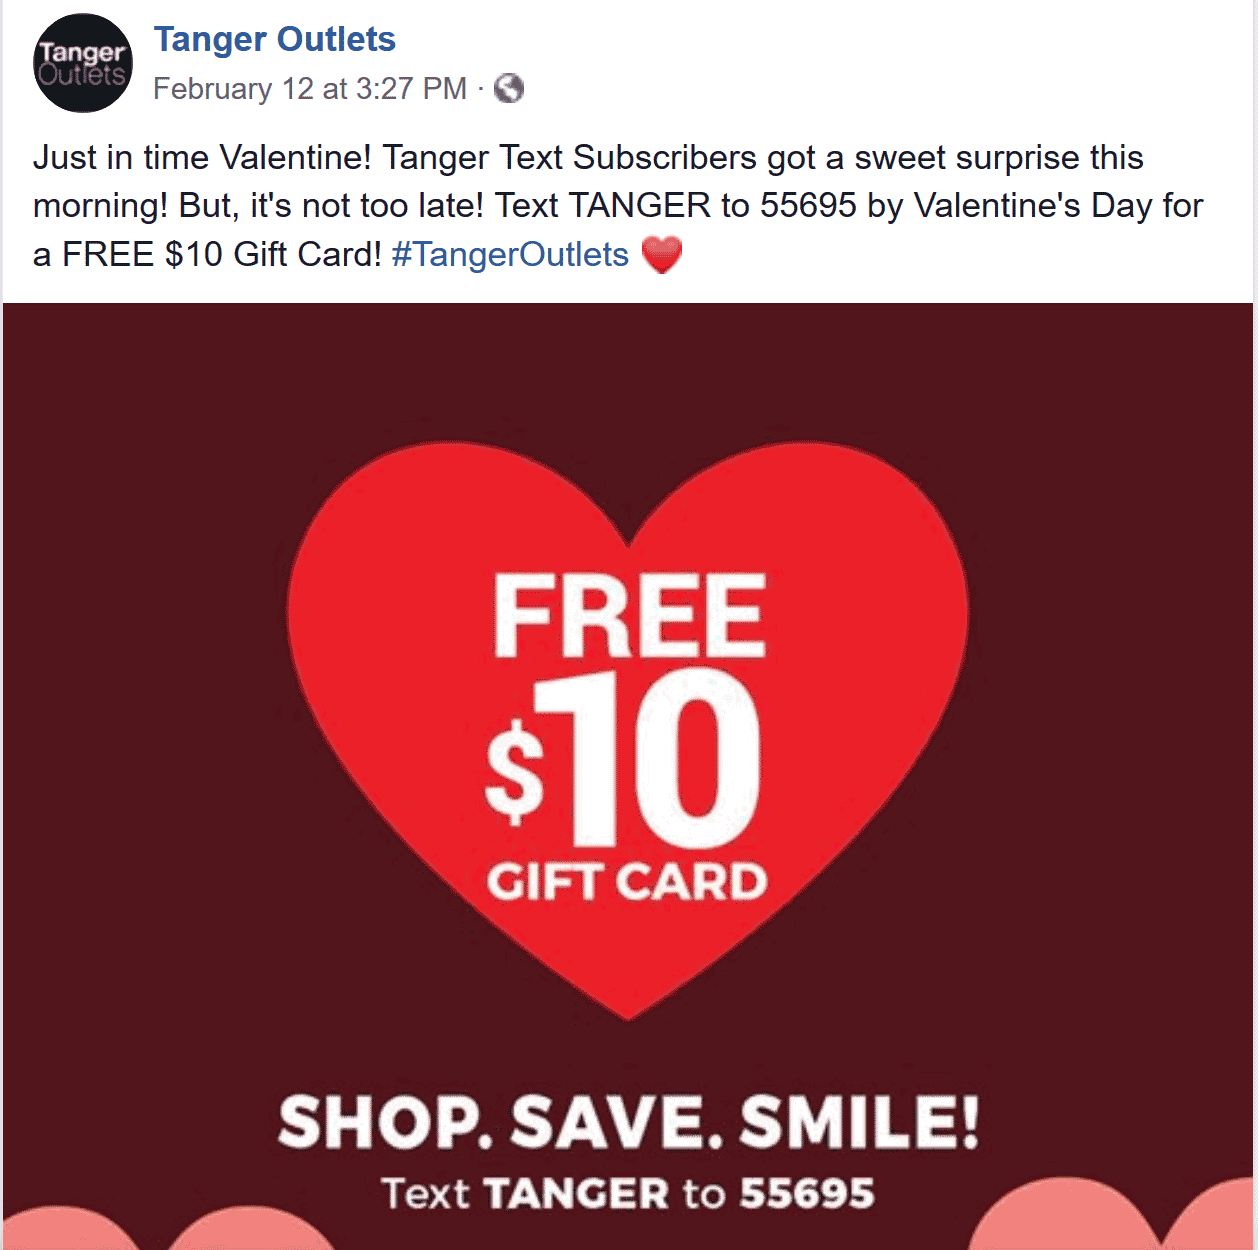 Tanger Coupon July 2019 Free $10 gift card via text at Tanger Outlets